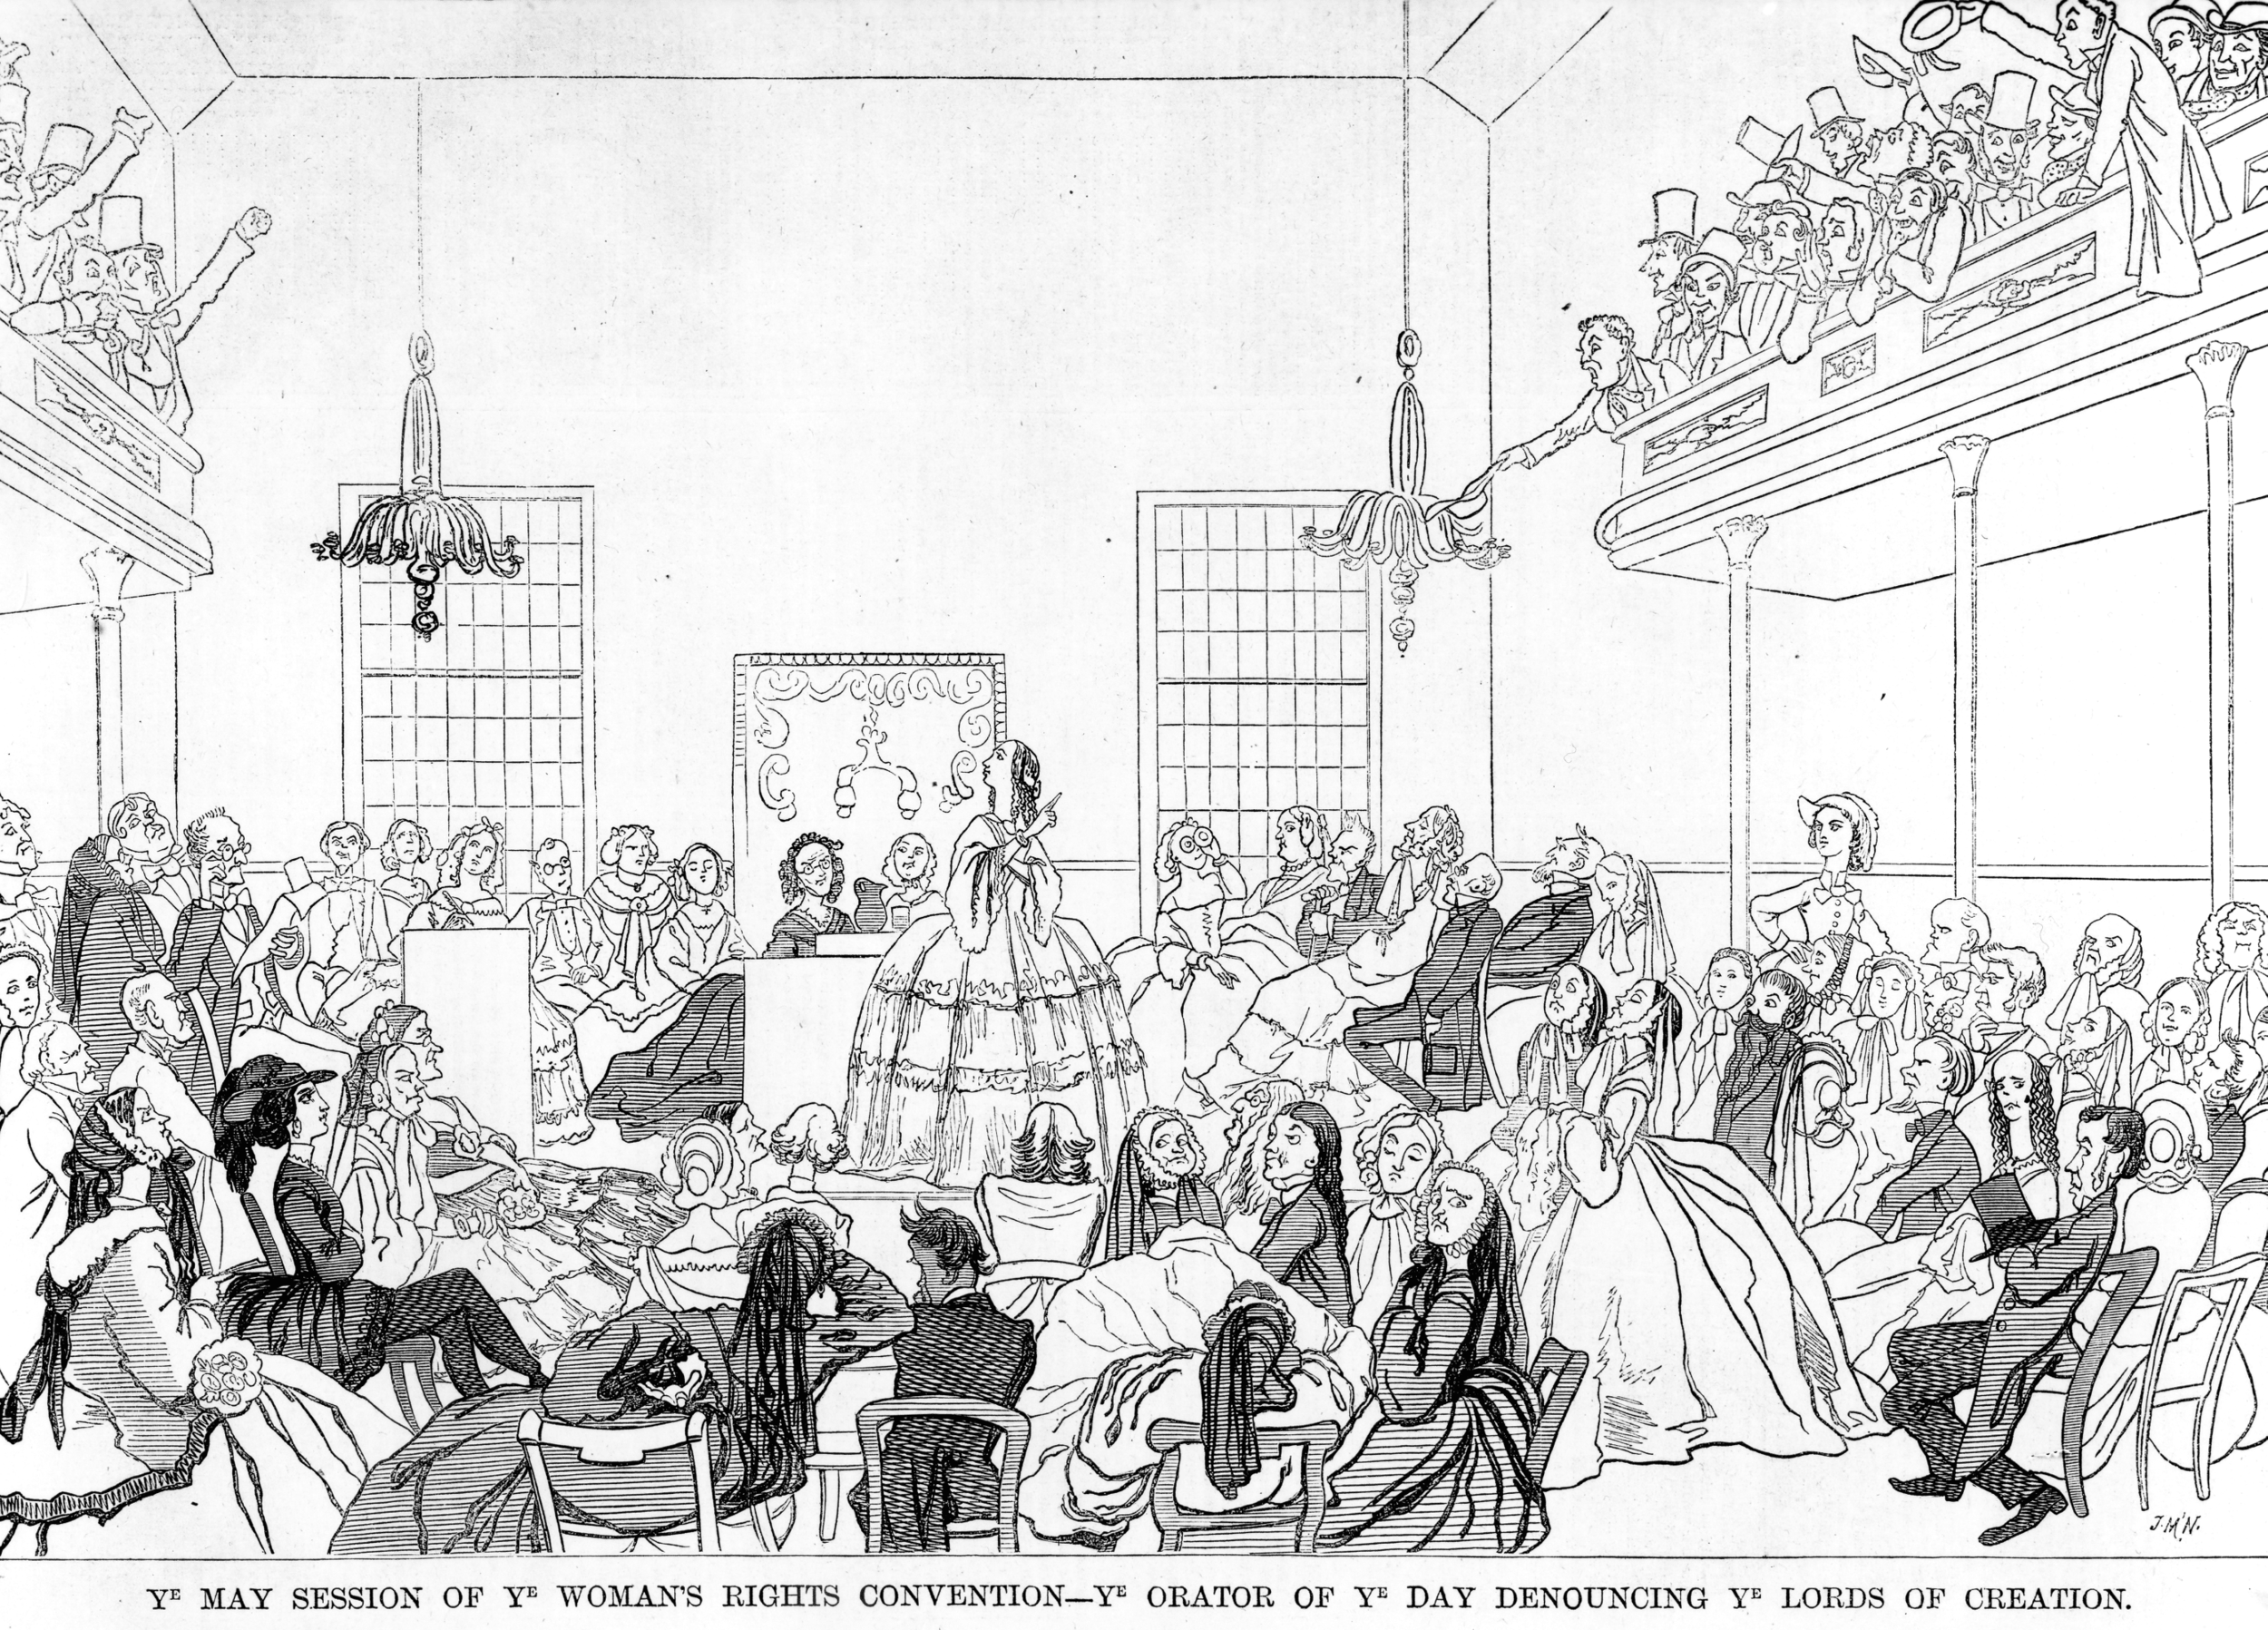 A political cartoon, published in 1859 mocking the Women's Rights Conventions. It was this kind of stigma that Suffragettes rallied against.